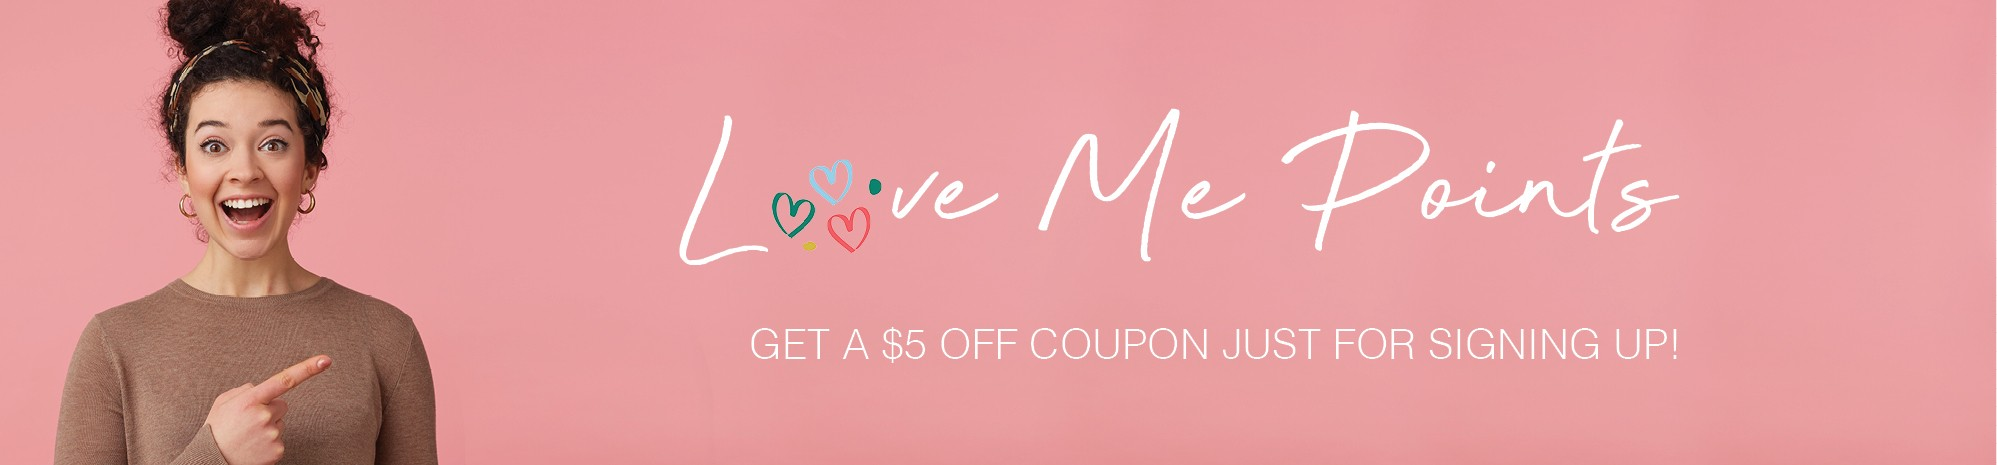 Love Me Points - Get a $5 Off Coupon Just For Signing Up!